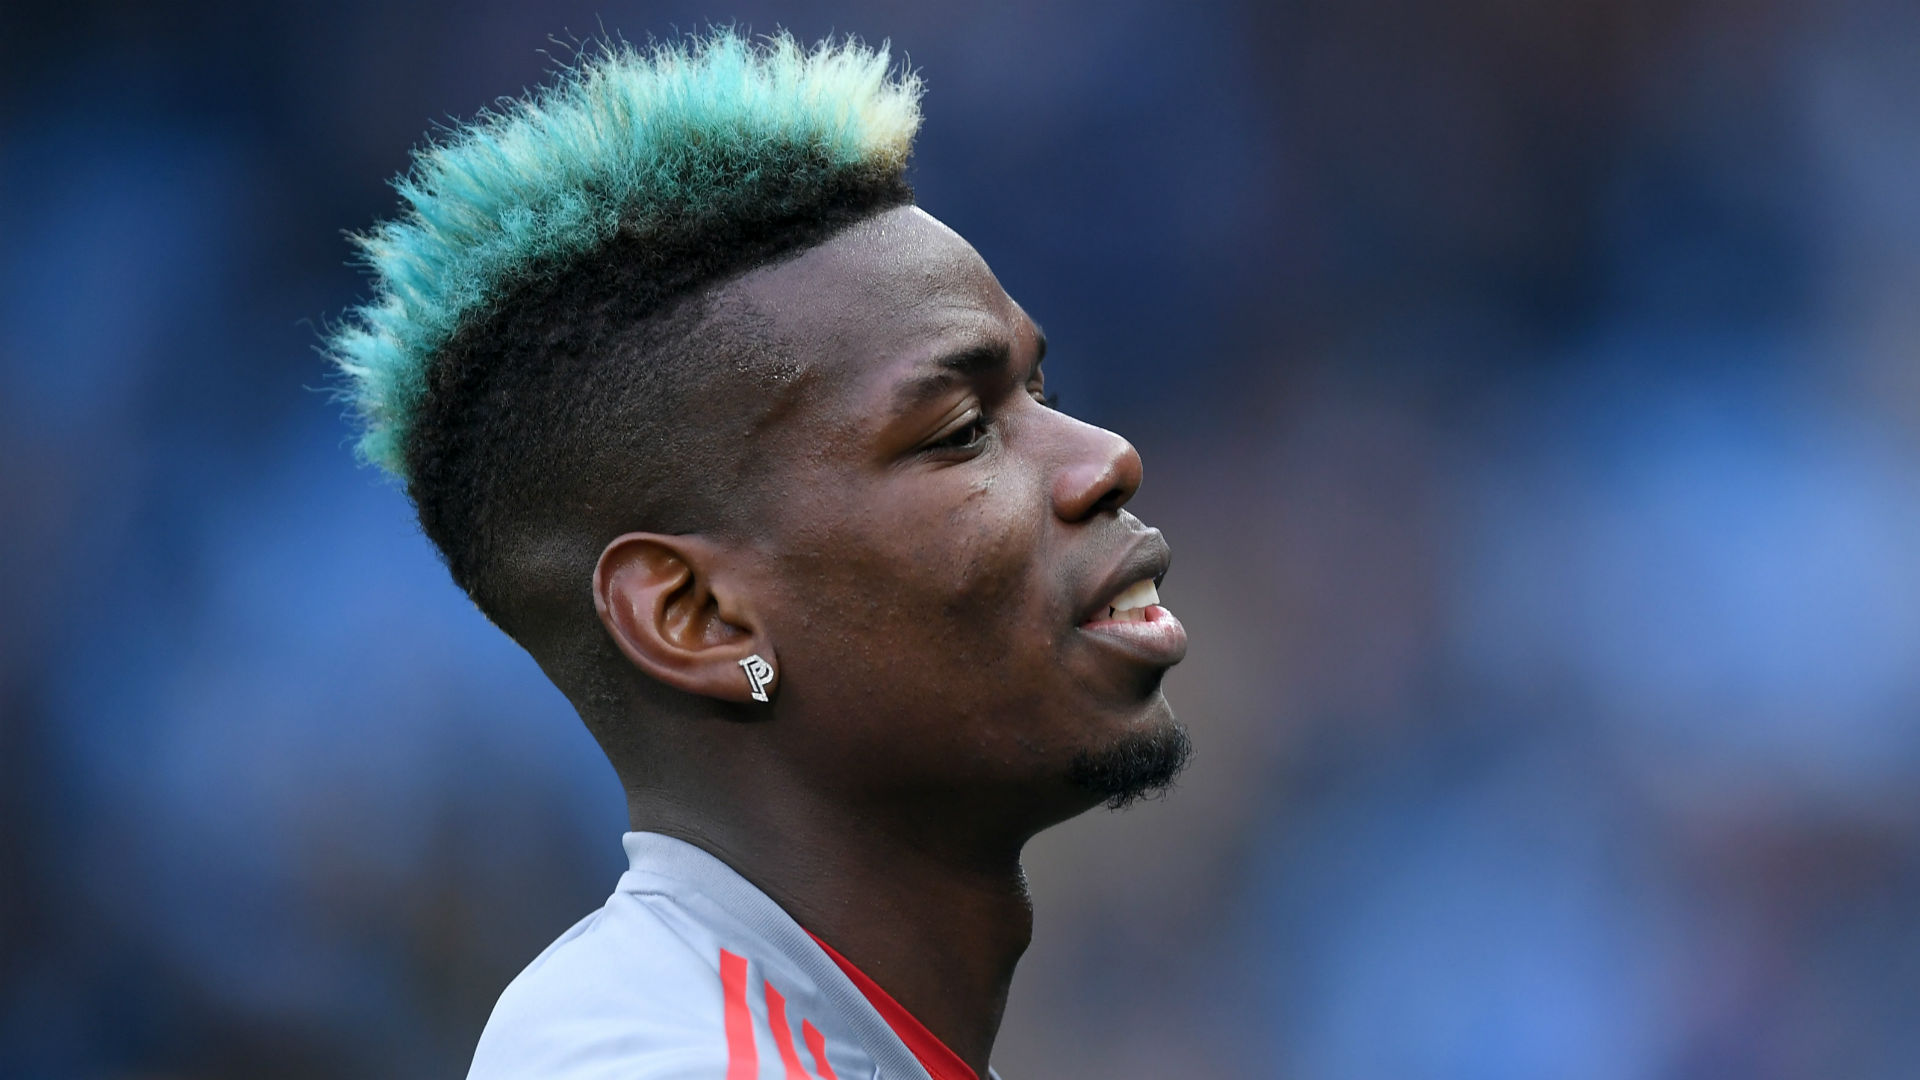 paul pogba hair style paul pogba haircuts utd s styles amp who cuts his 6005 | paul pogba haircut qofup0s13f4y1myai1b06u17n